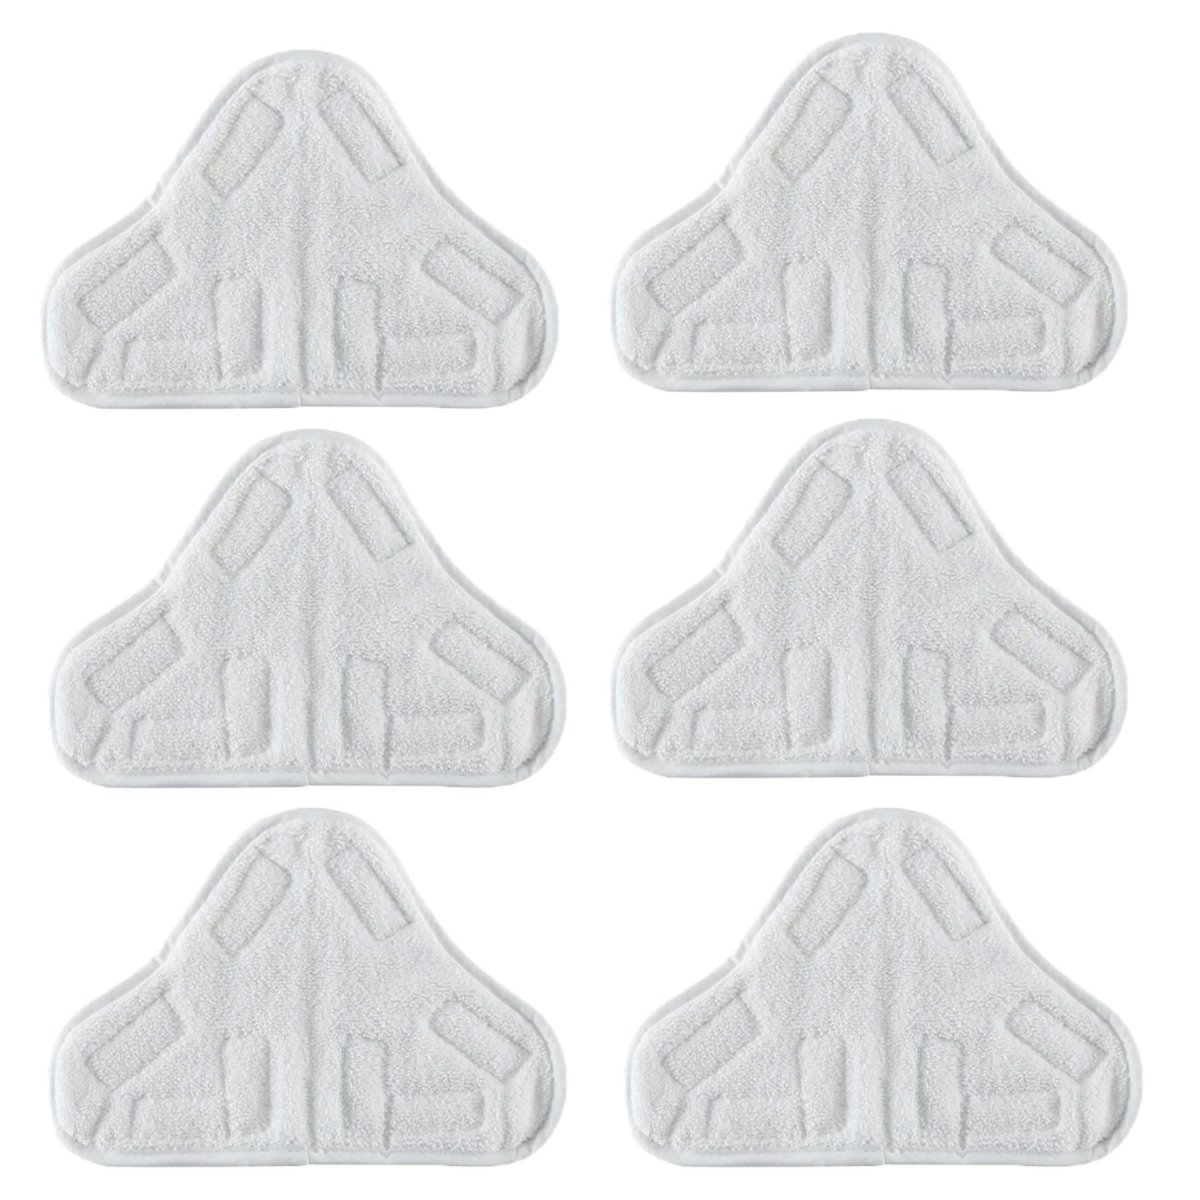 VacFit Steam Mop Pads for Steamboy H20 X 5 Steam Duster Washable Triangle Microfiber Cleaning Pads Cloth Pad Vacuum Cleaner Accessories Replacement Pads White 6 pcs